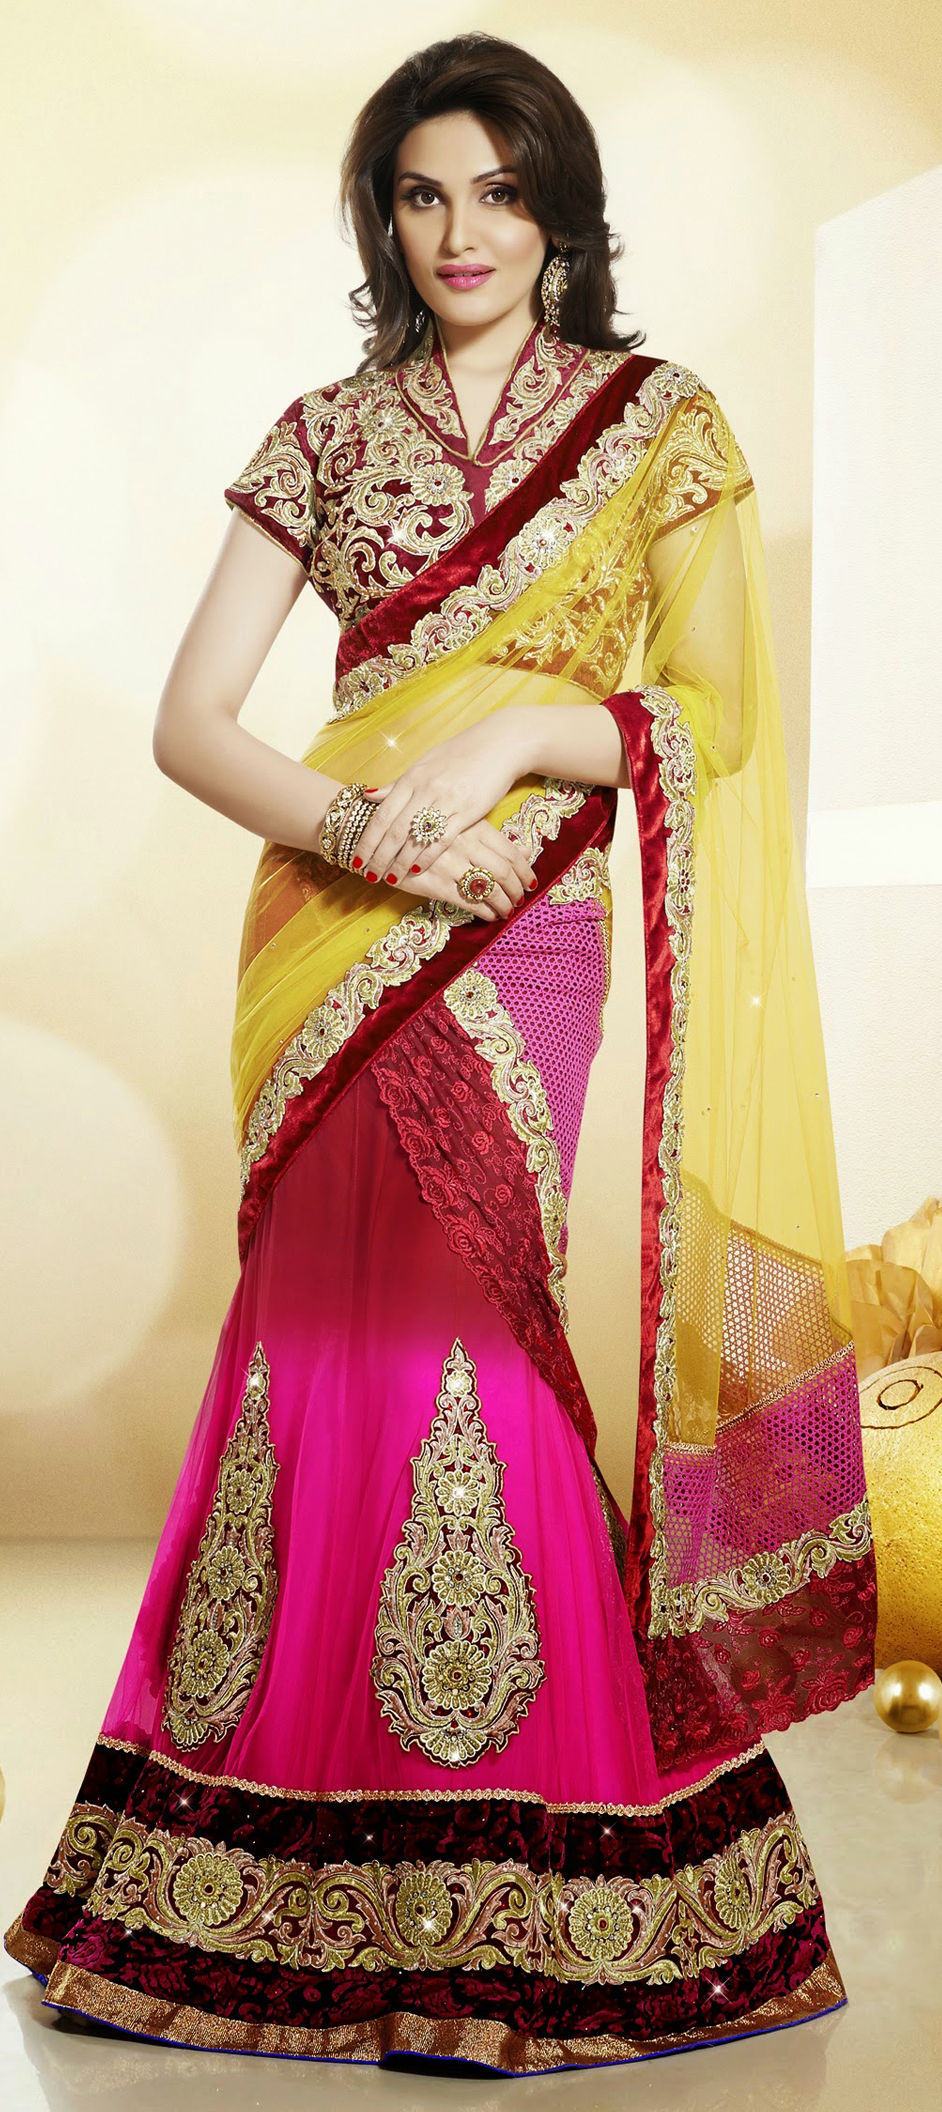 Net Bollywood Lehenga in Red and Maroon with Stone work